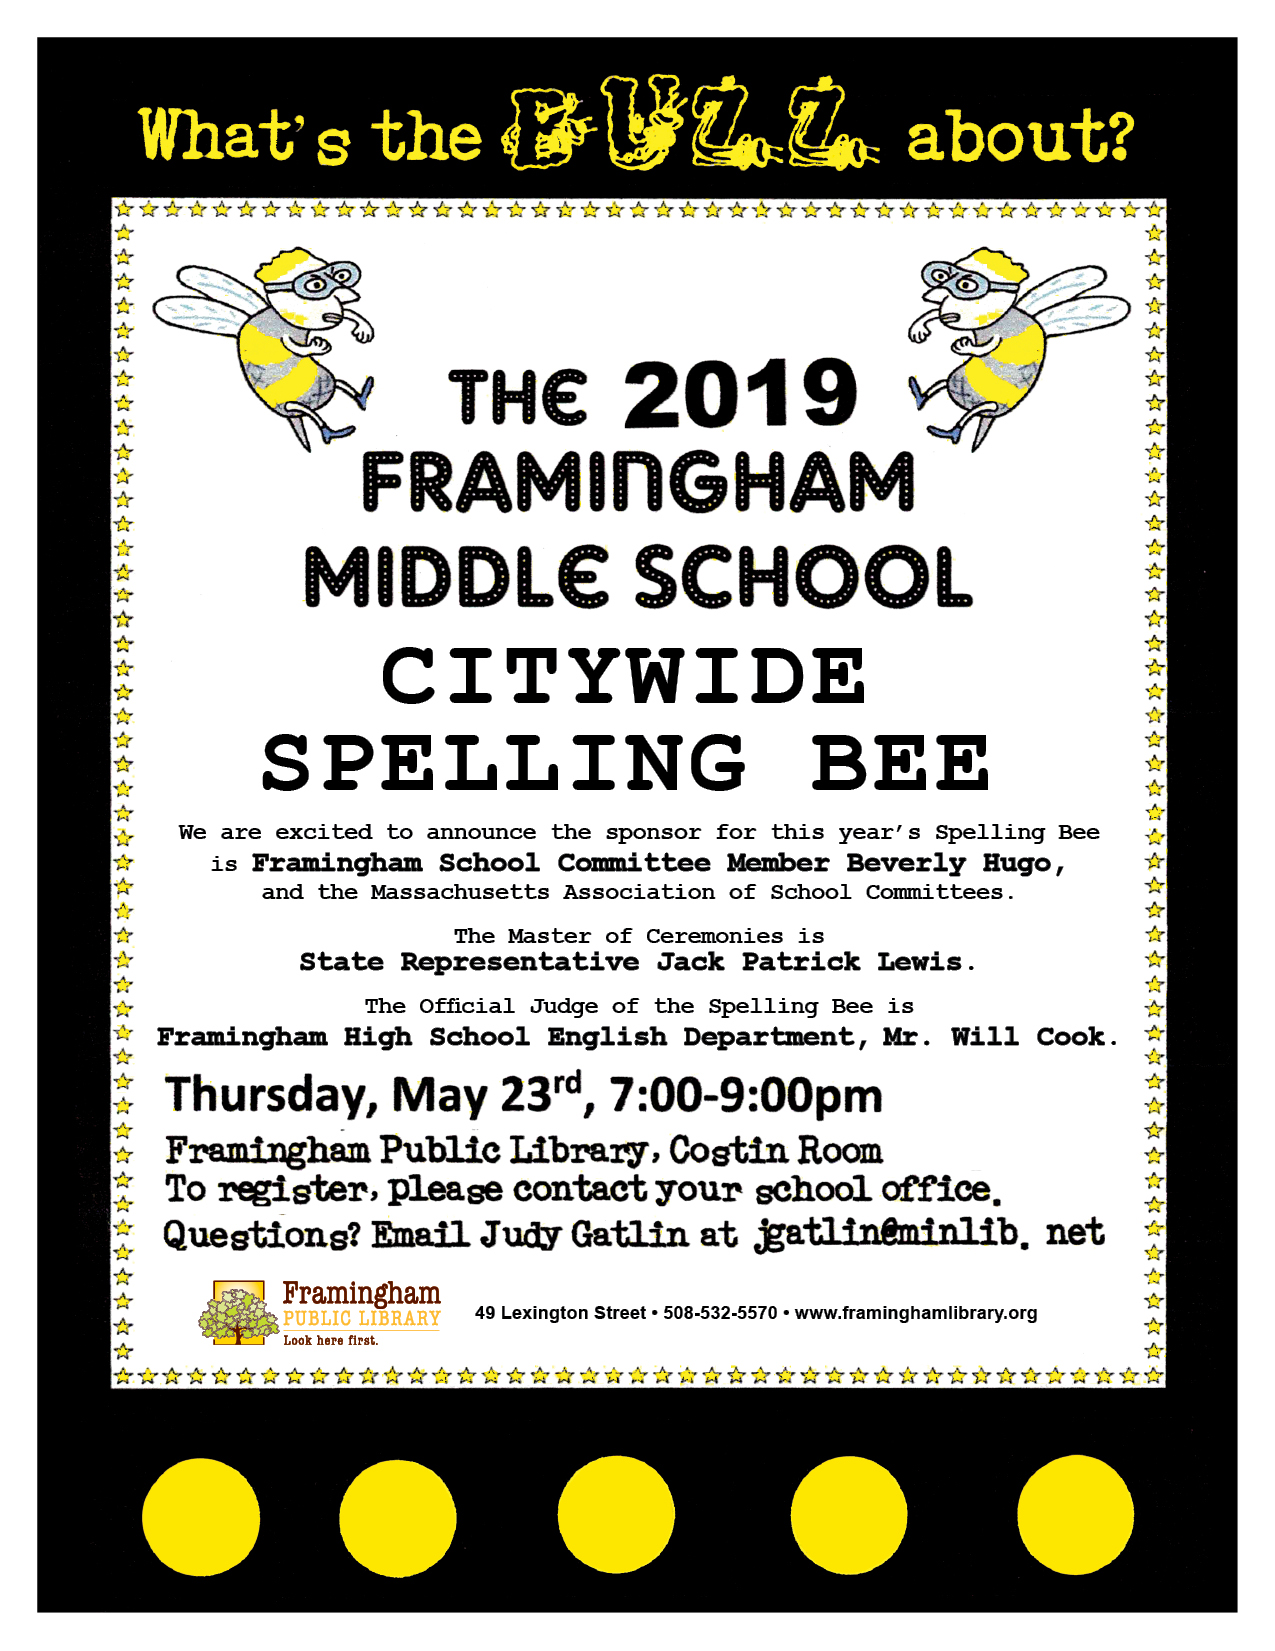 What's All the Buzz About? 6th Annual Middle School Spelling Bee thumbnail Photo